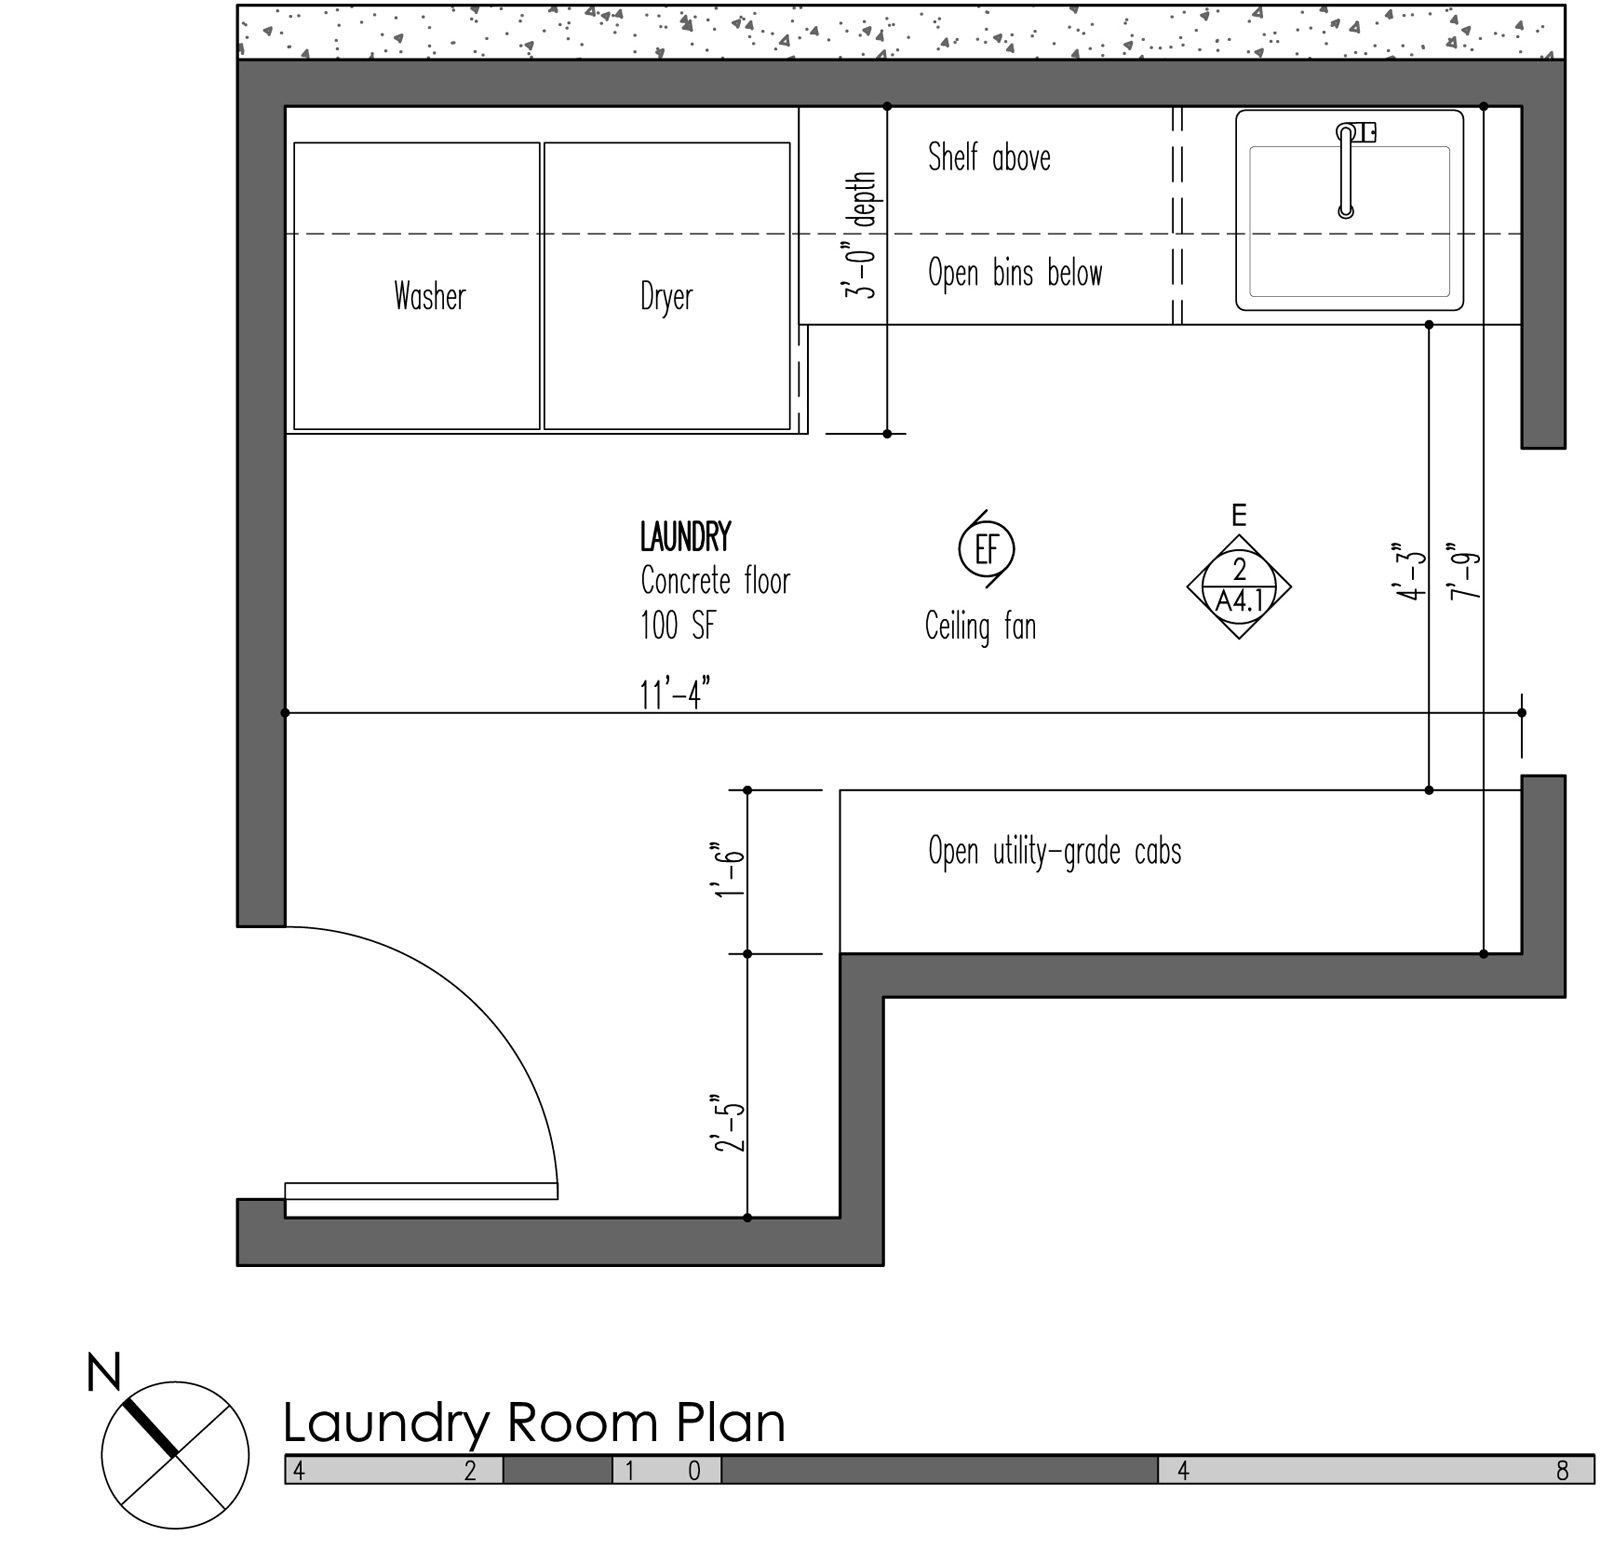 Mud Laundry Room Design Build Blog Laundry Room Design Laundry Room Layouts Elegant Laundry Room